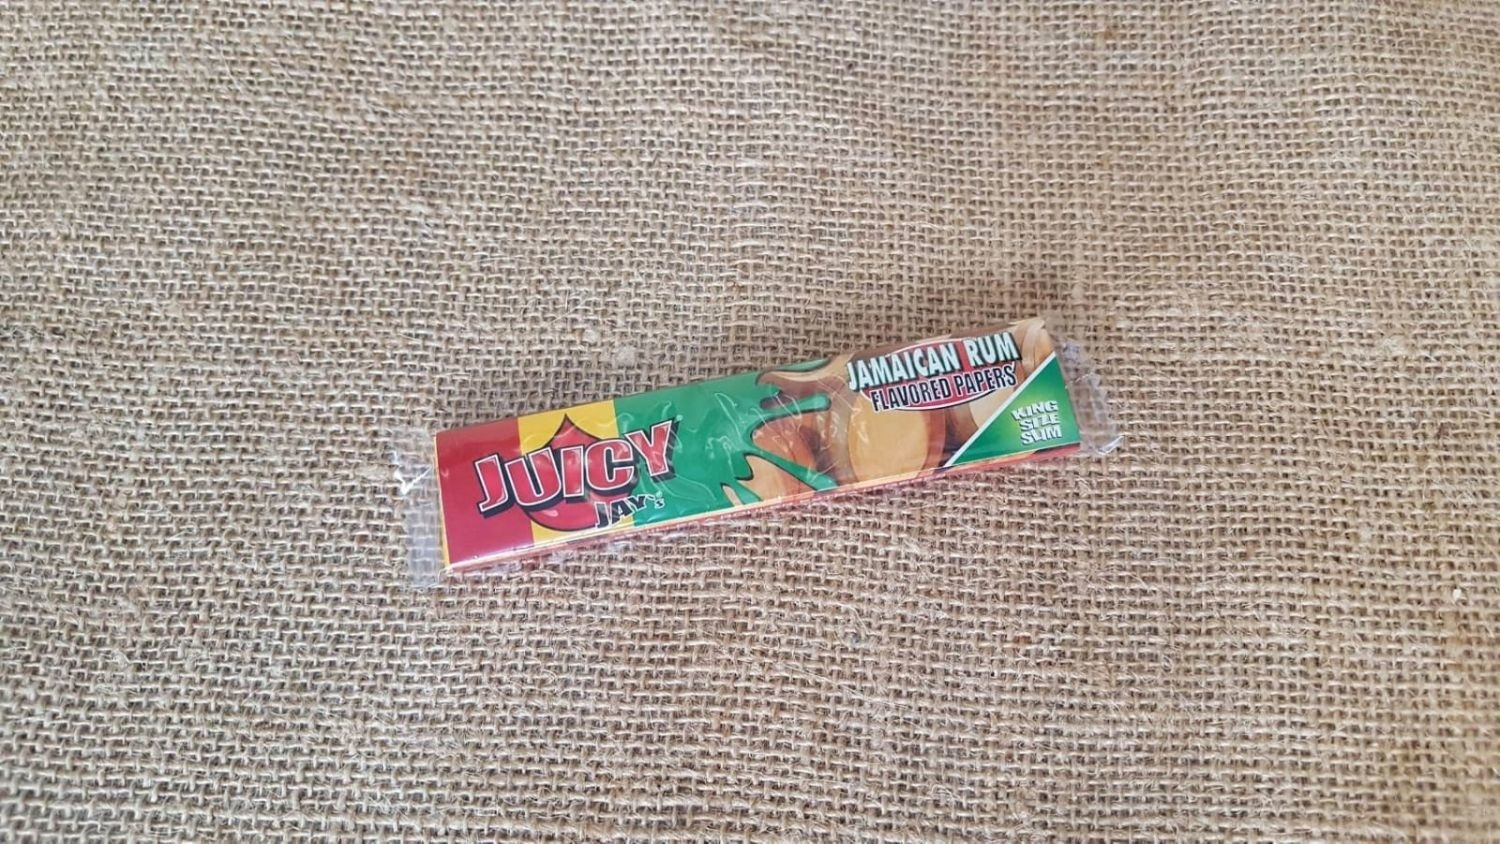 กระดาษมวน Juicy Jay Flavoured Papers - Jamaican Rum